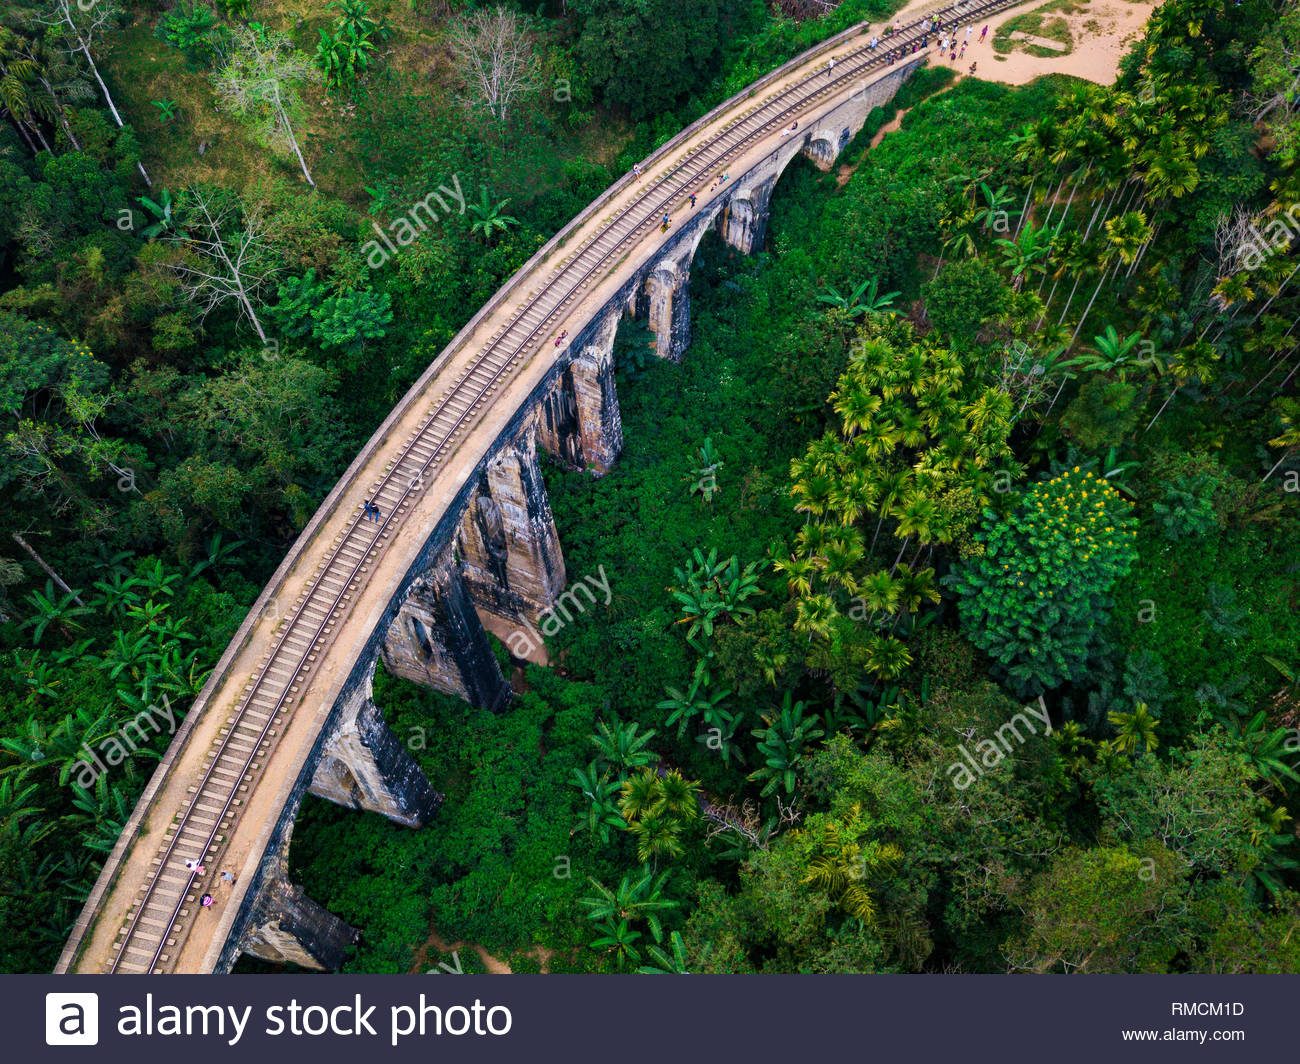 Aerial view of Nine Arches Bridge in Ella, Sri Lanka. Drone photo Stock Photo